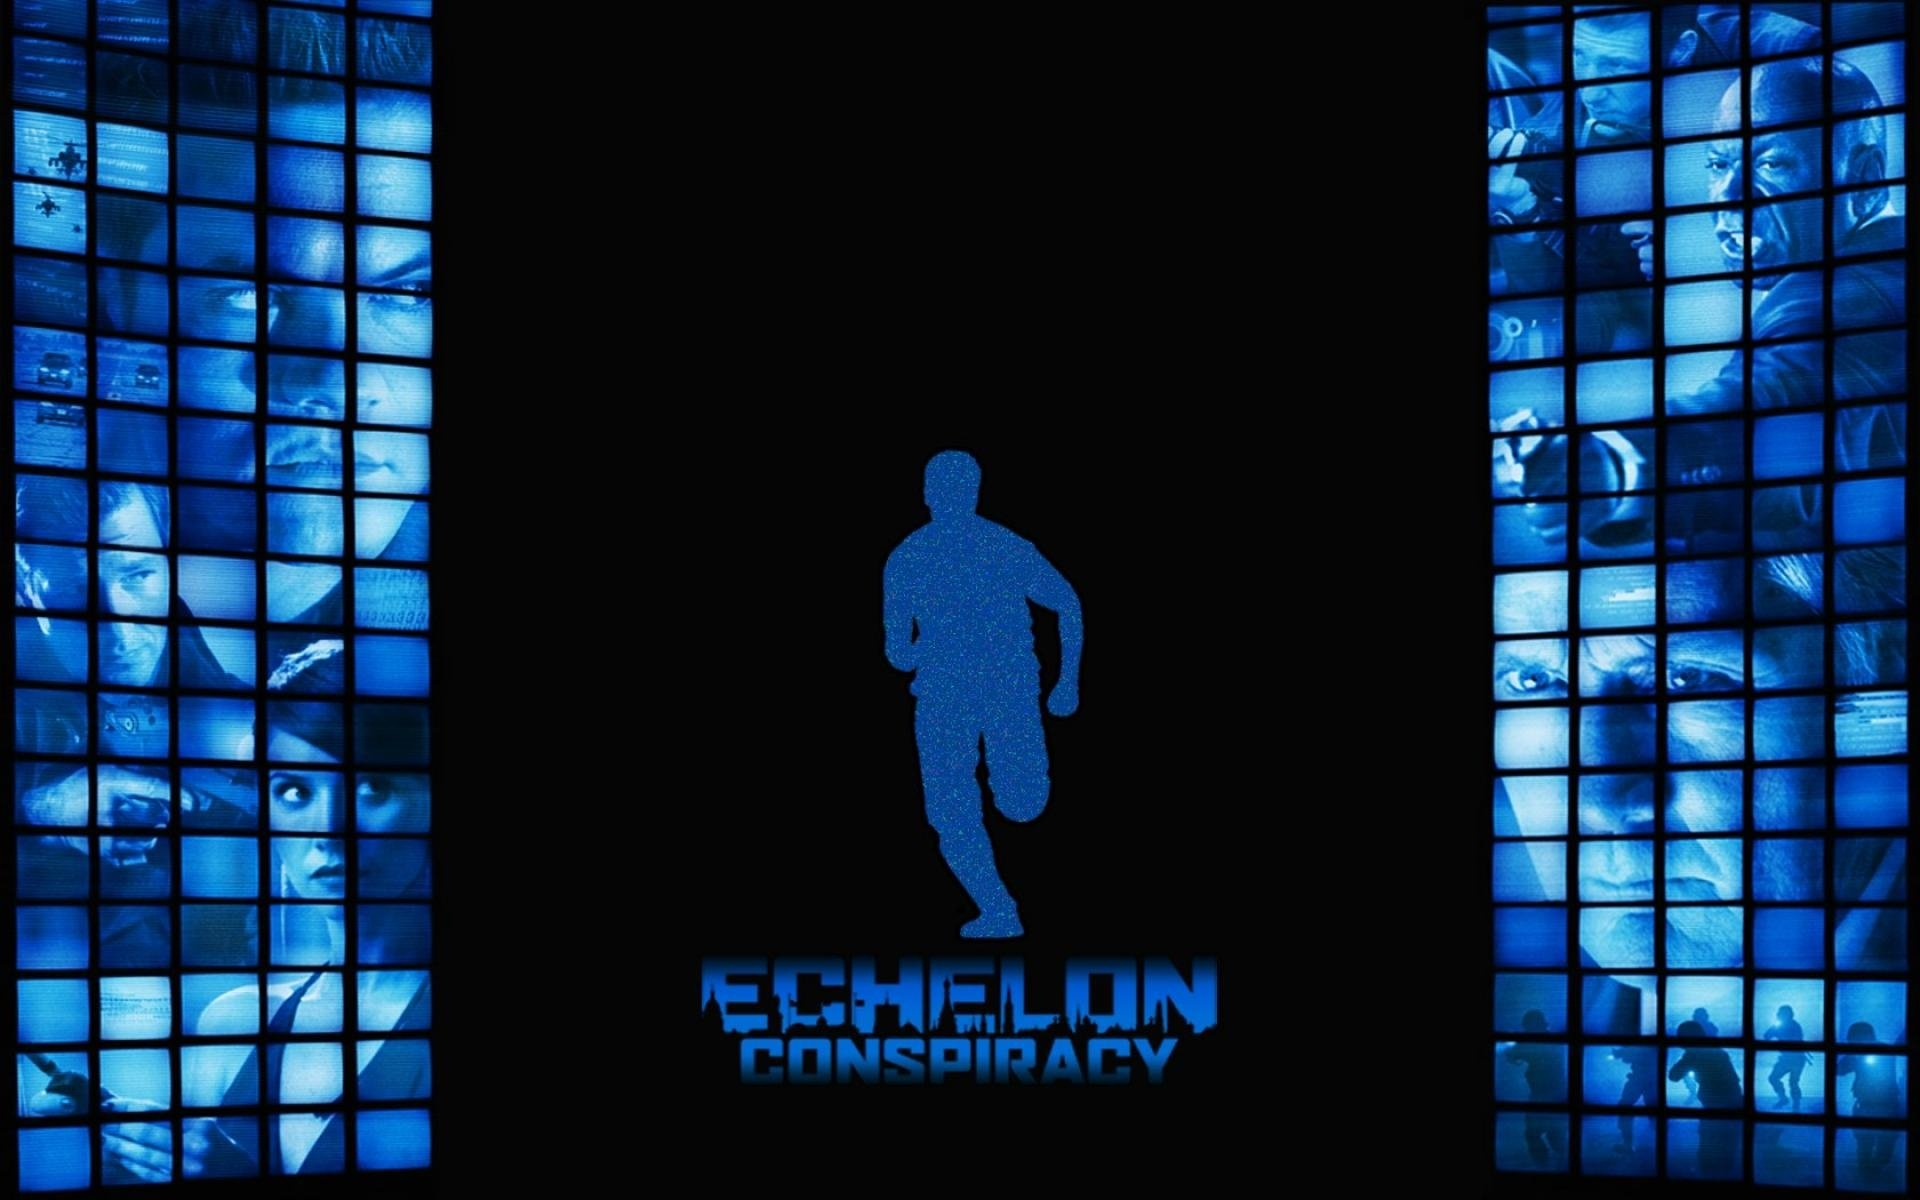 echelon conspiracy full hd wallpaper and background image